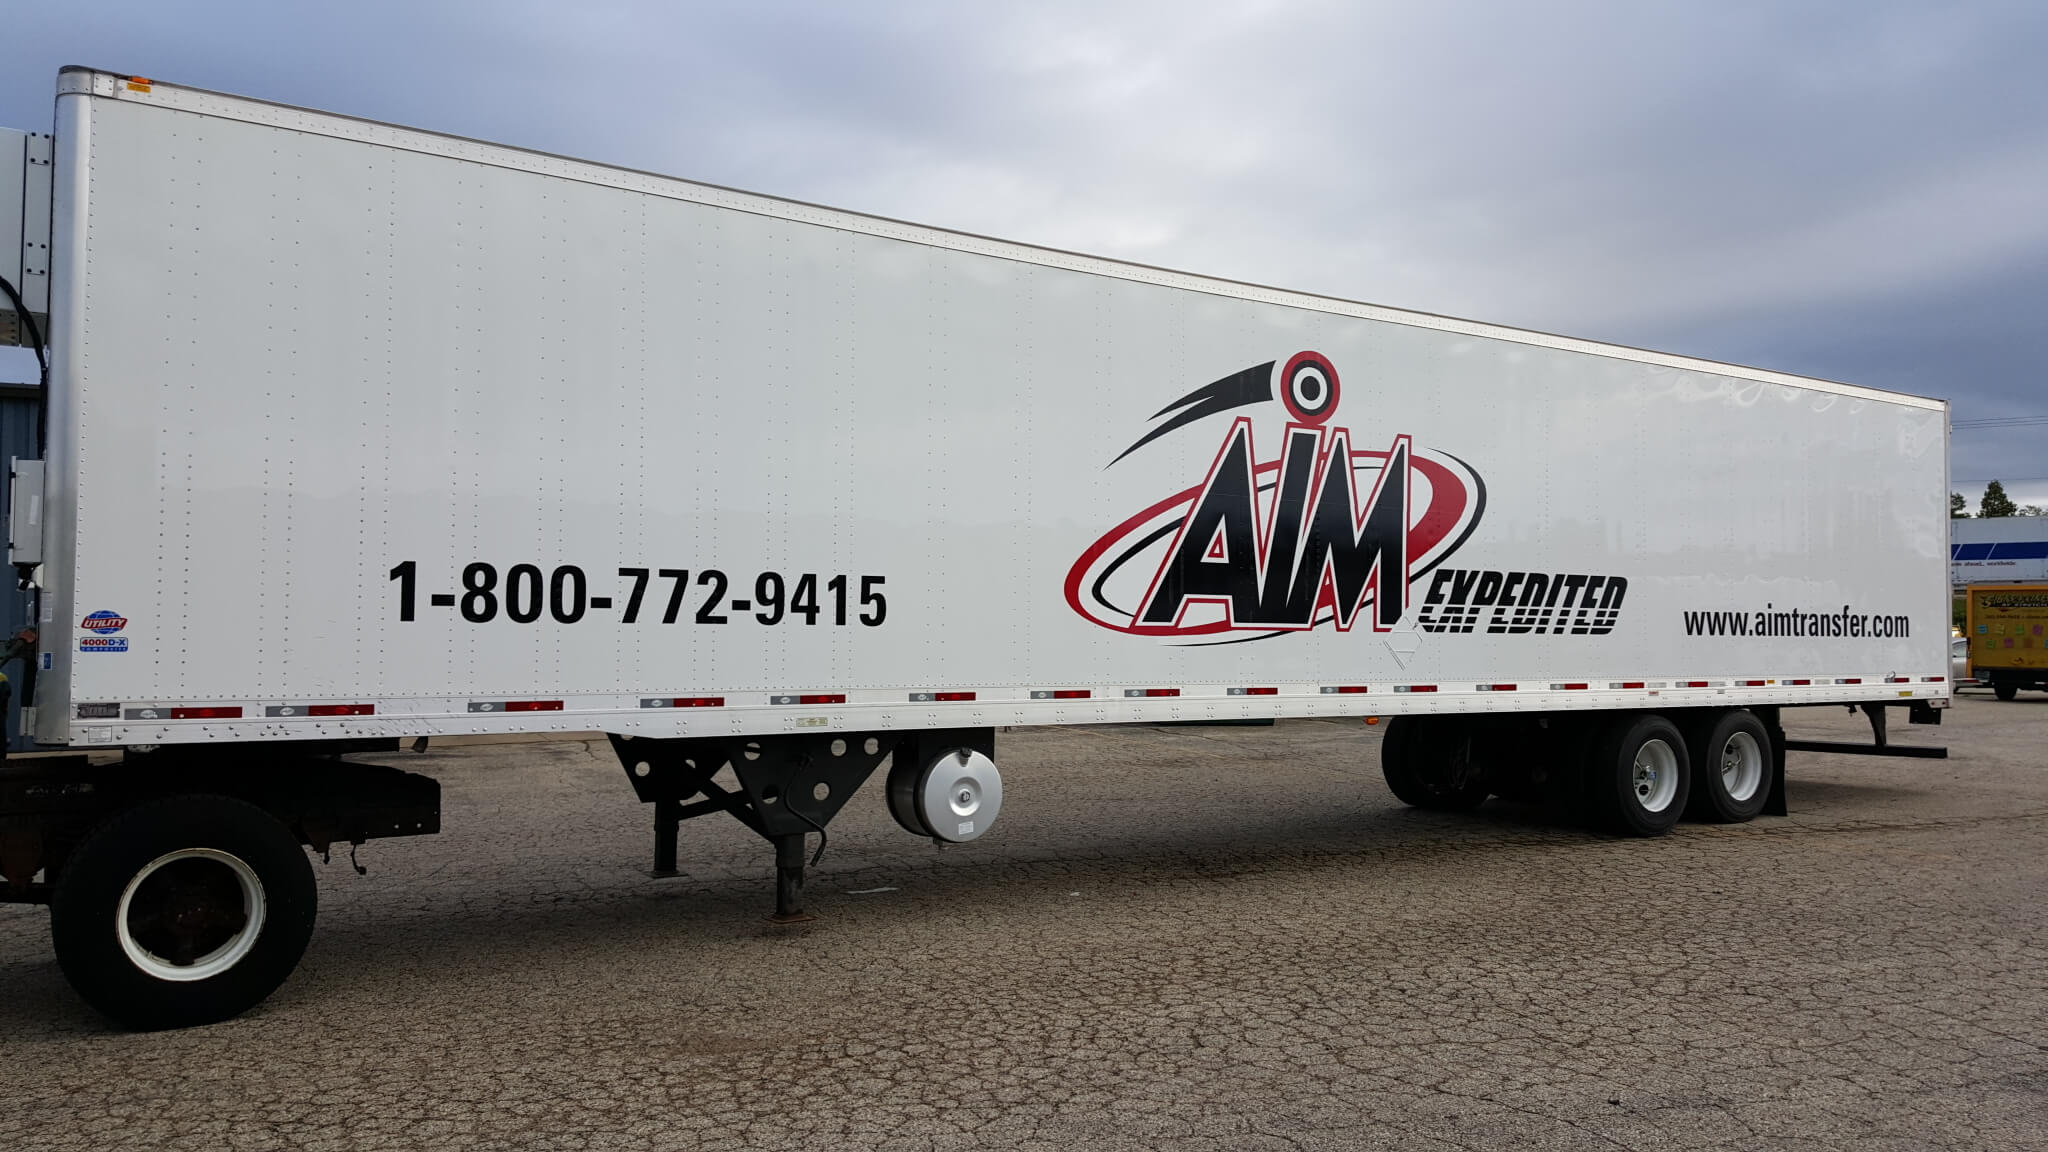 AIM Trailer and Truck Wrap